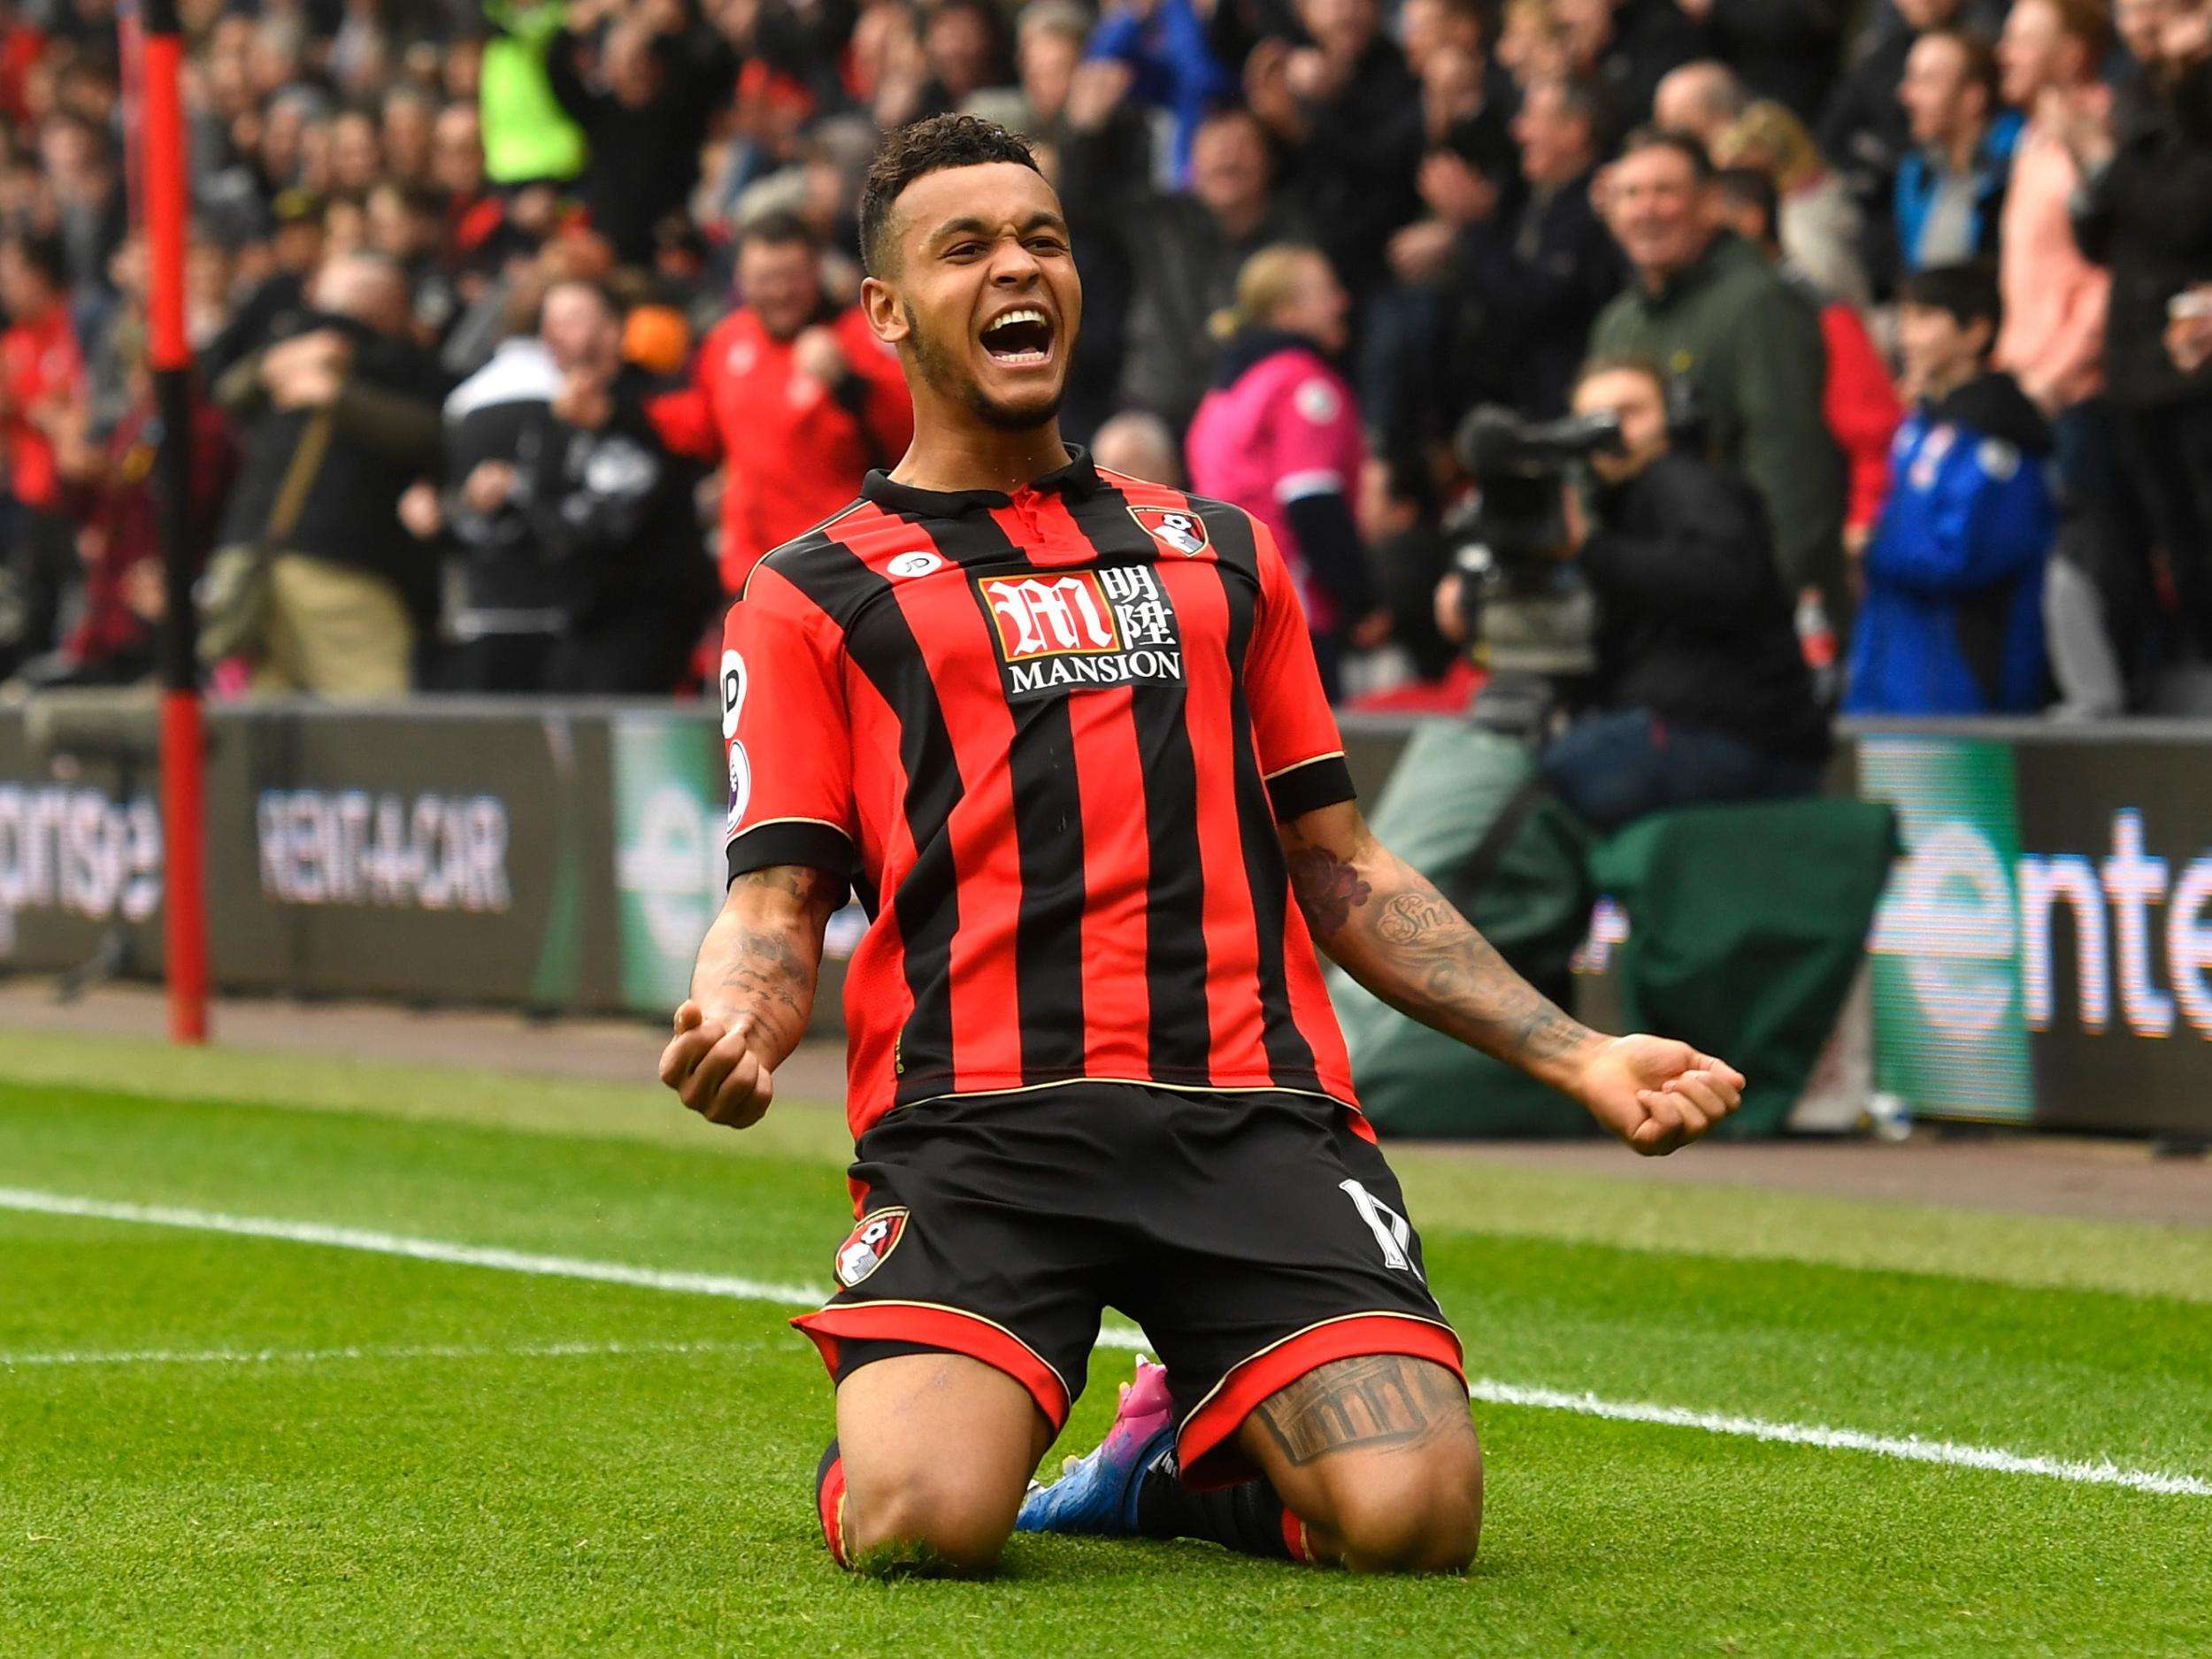 Tottenham transfer news: Bournemouth striker Josh King 'intrigued' by Spurs  link but insists he is happy on south coast   The Independent   The  Independent